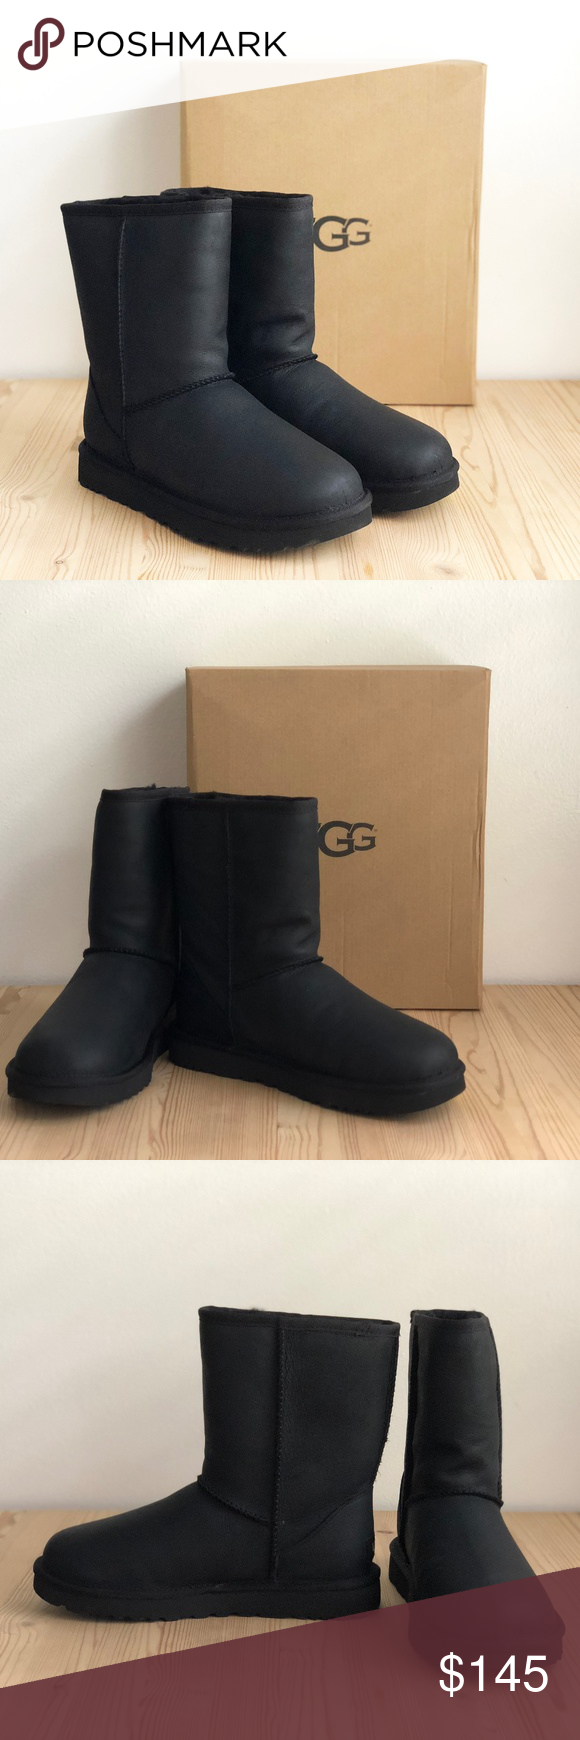 0618d5aac77 NEW UGG Classic Short Leather Boots Black Style #: 1016559 Color ...